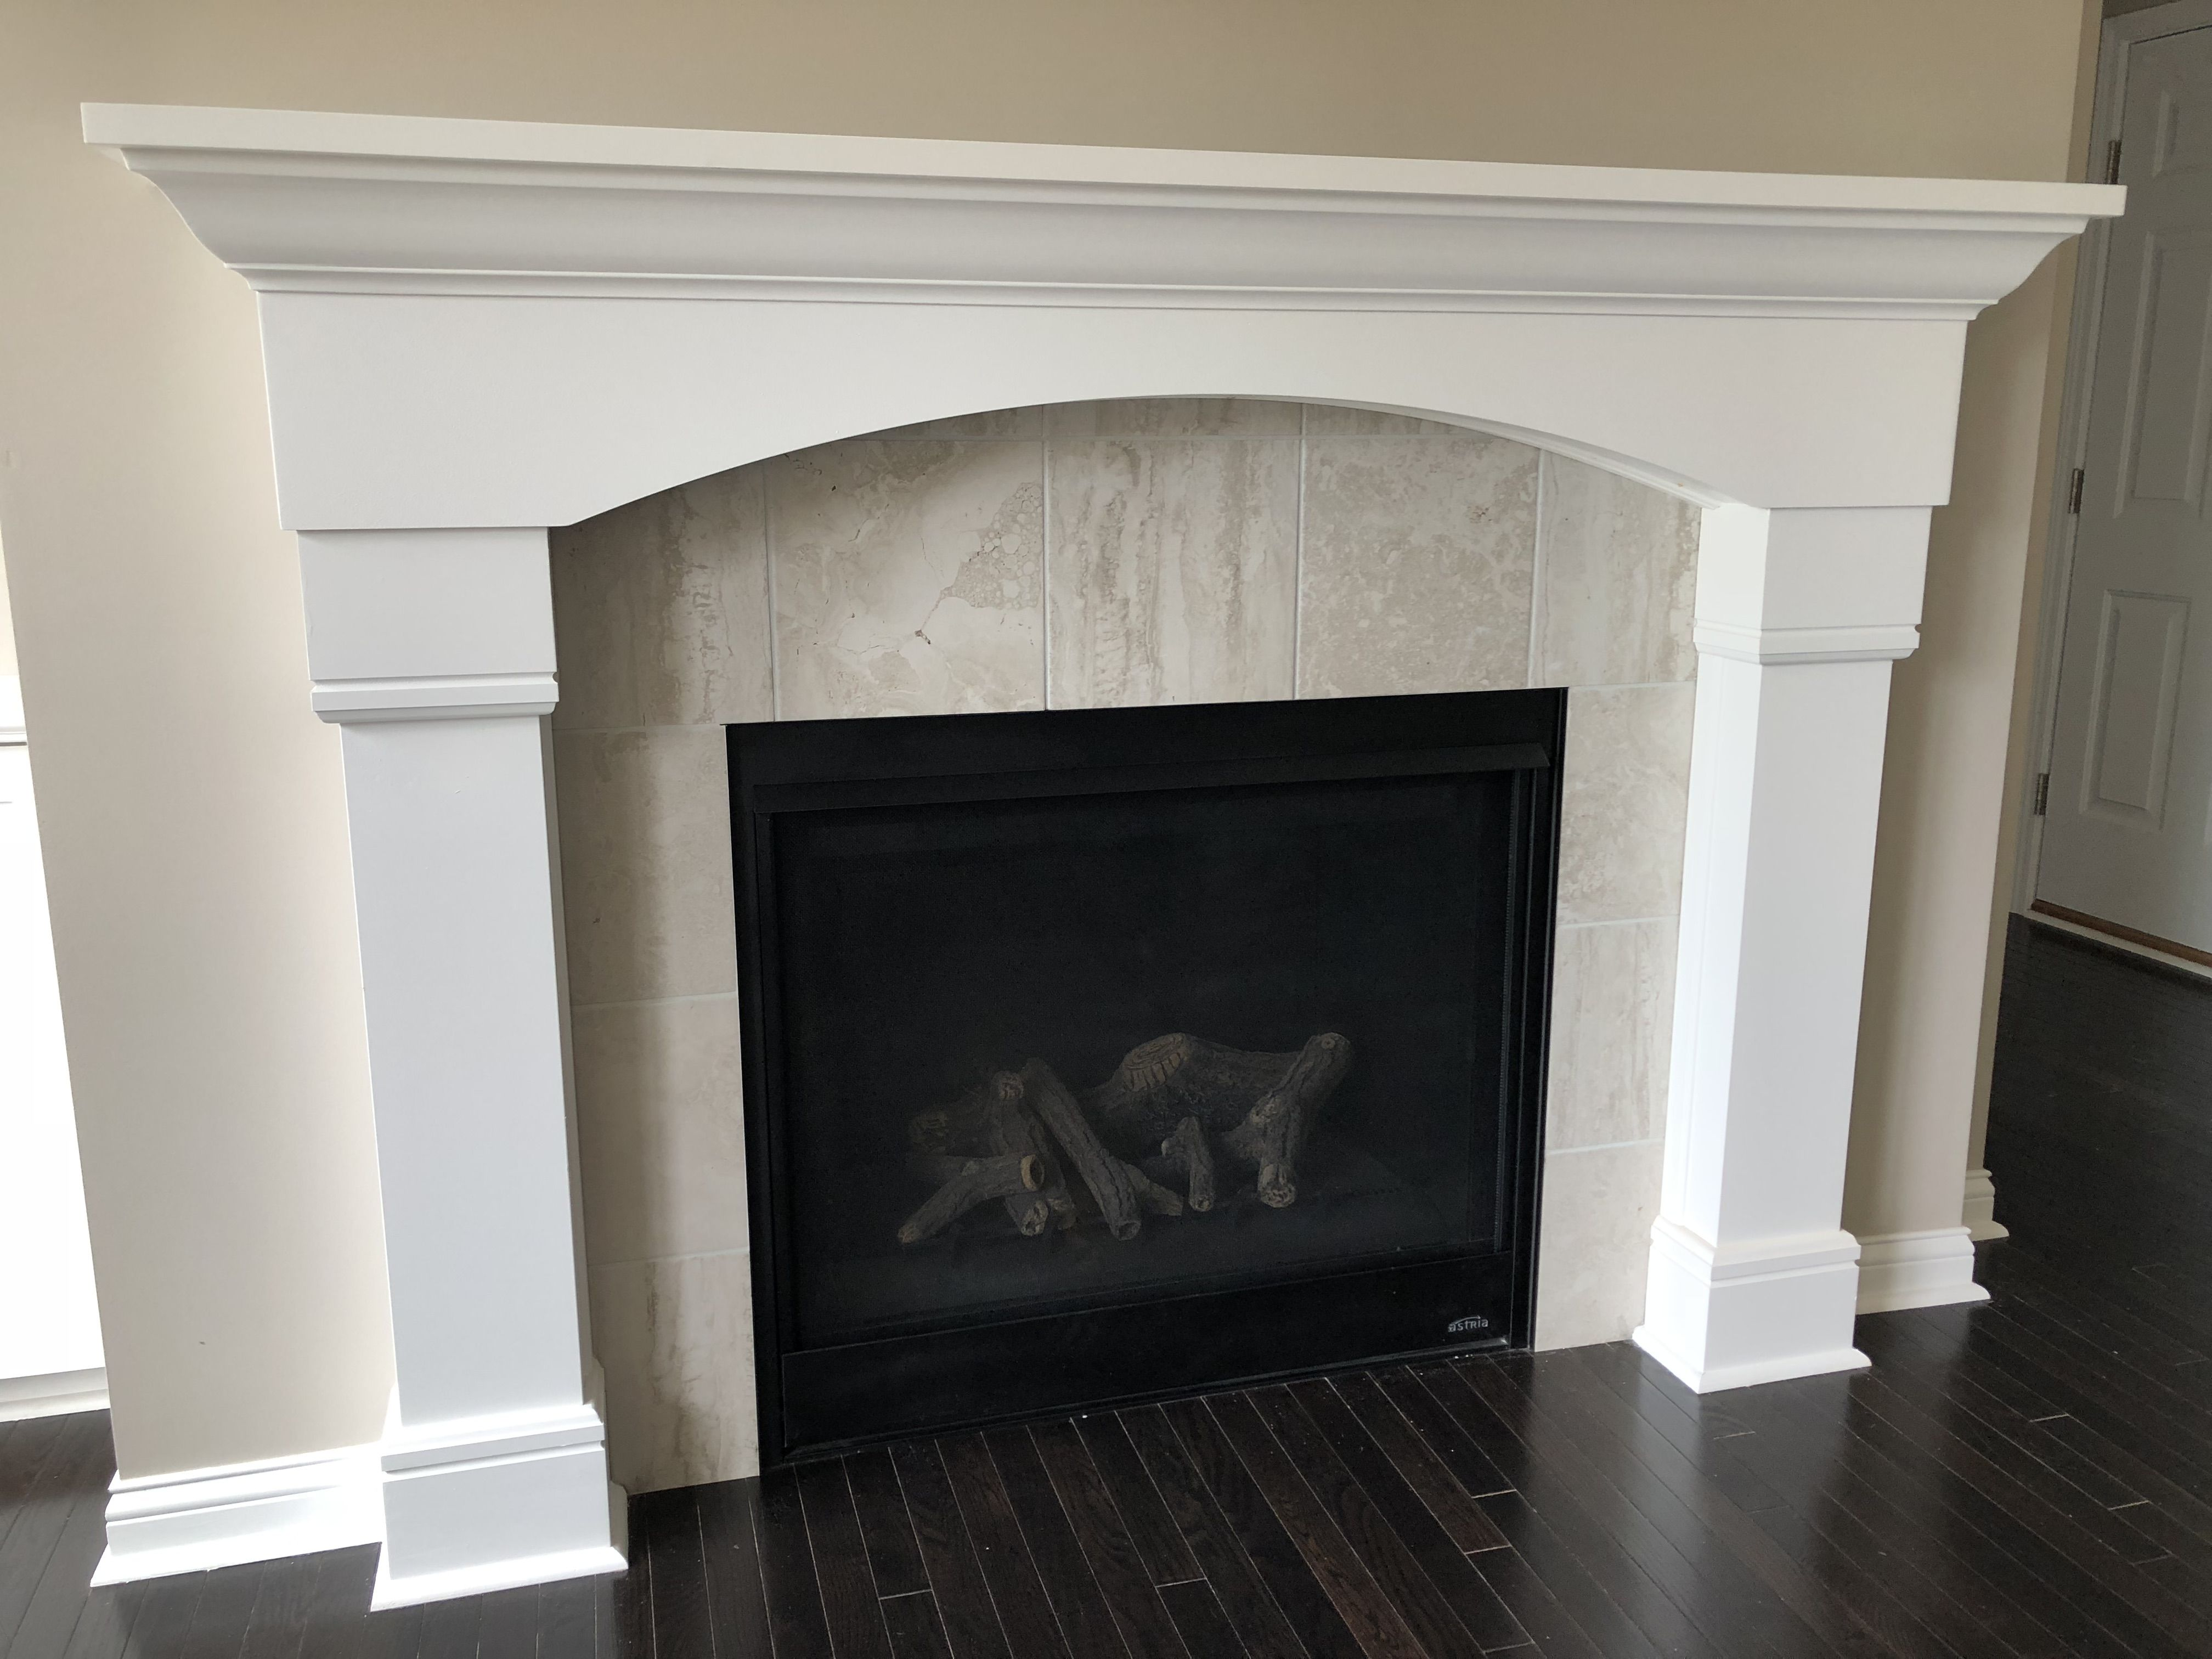 Mantle 2 Exquisite 12x12 Ivory Tile Fireplace Surround Fireplace Tile Surround Fireplace Tile Fireplace Surrounds